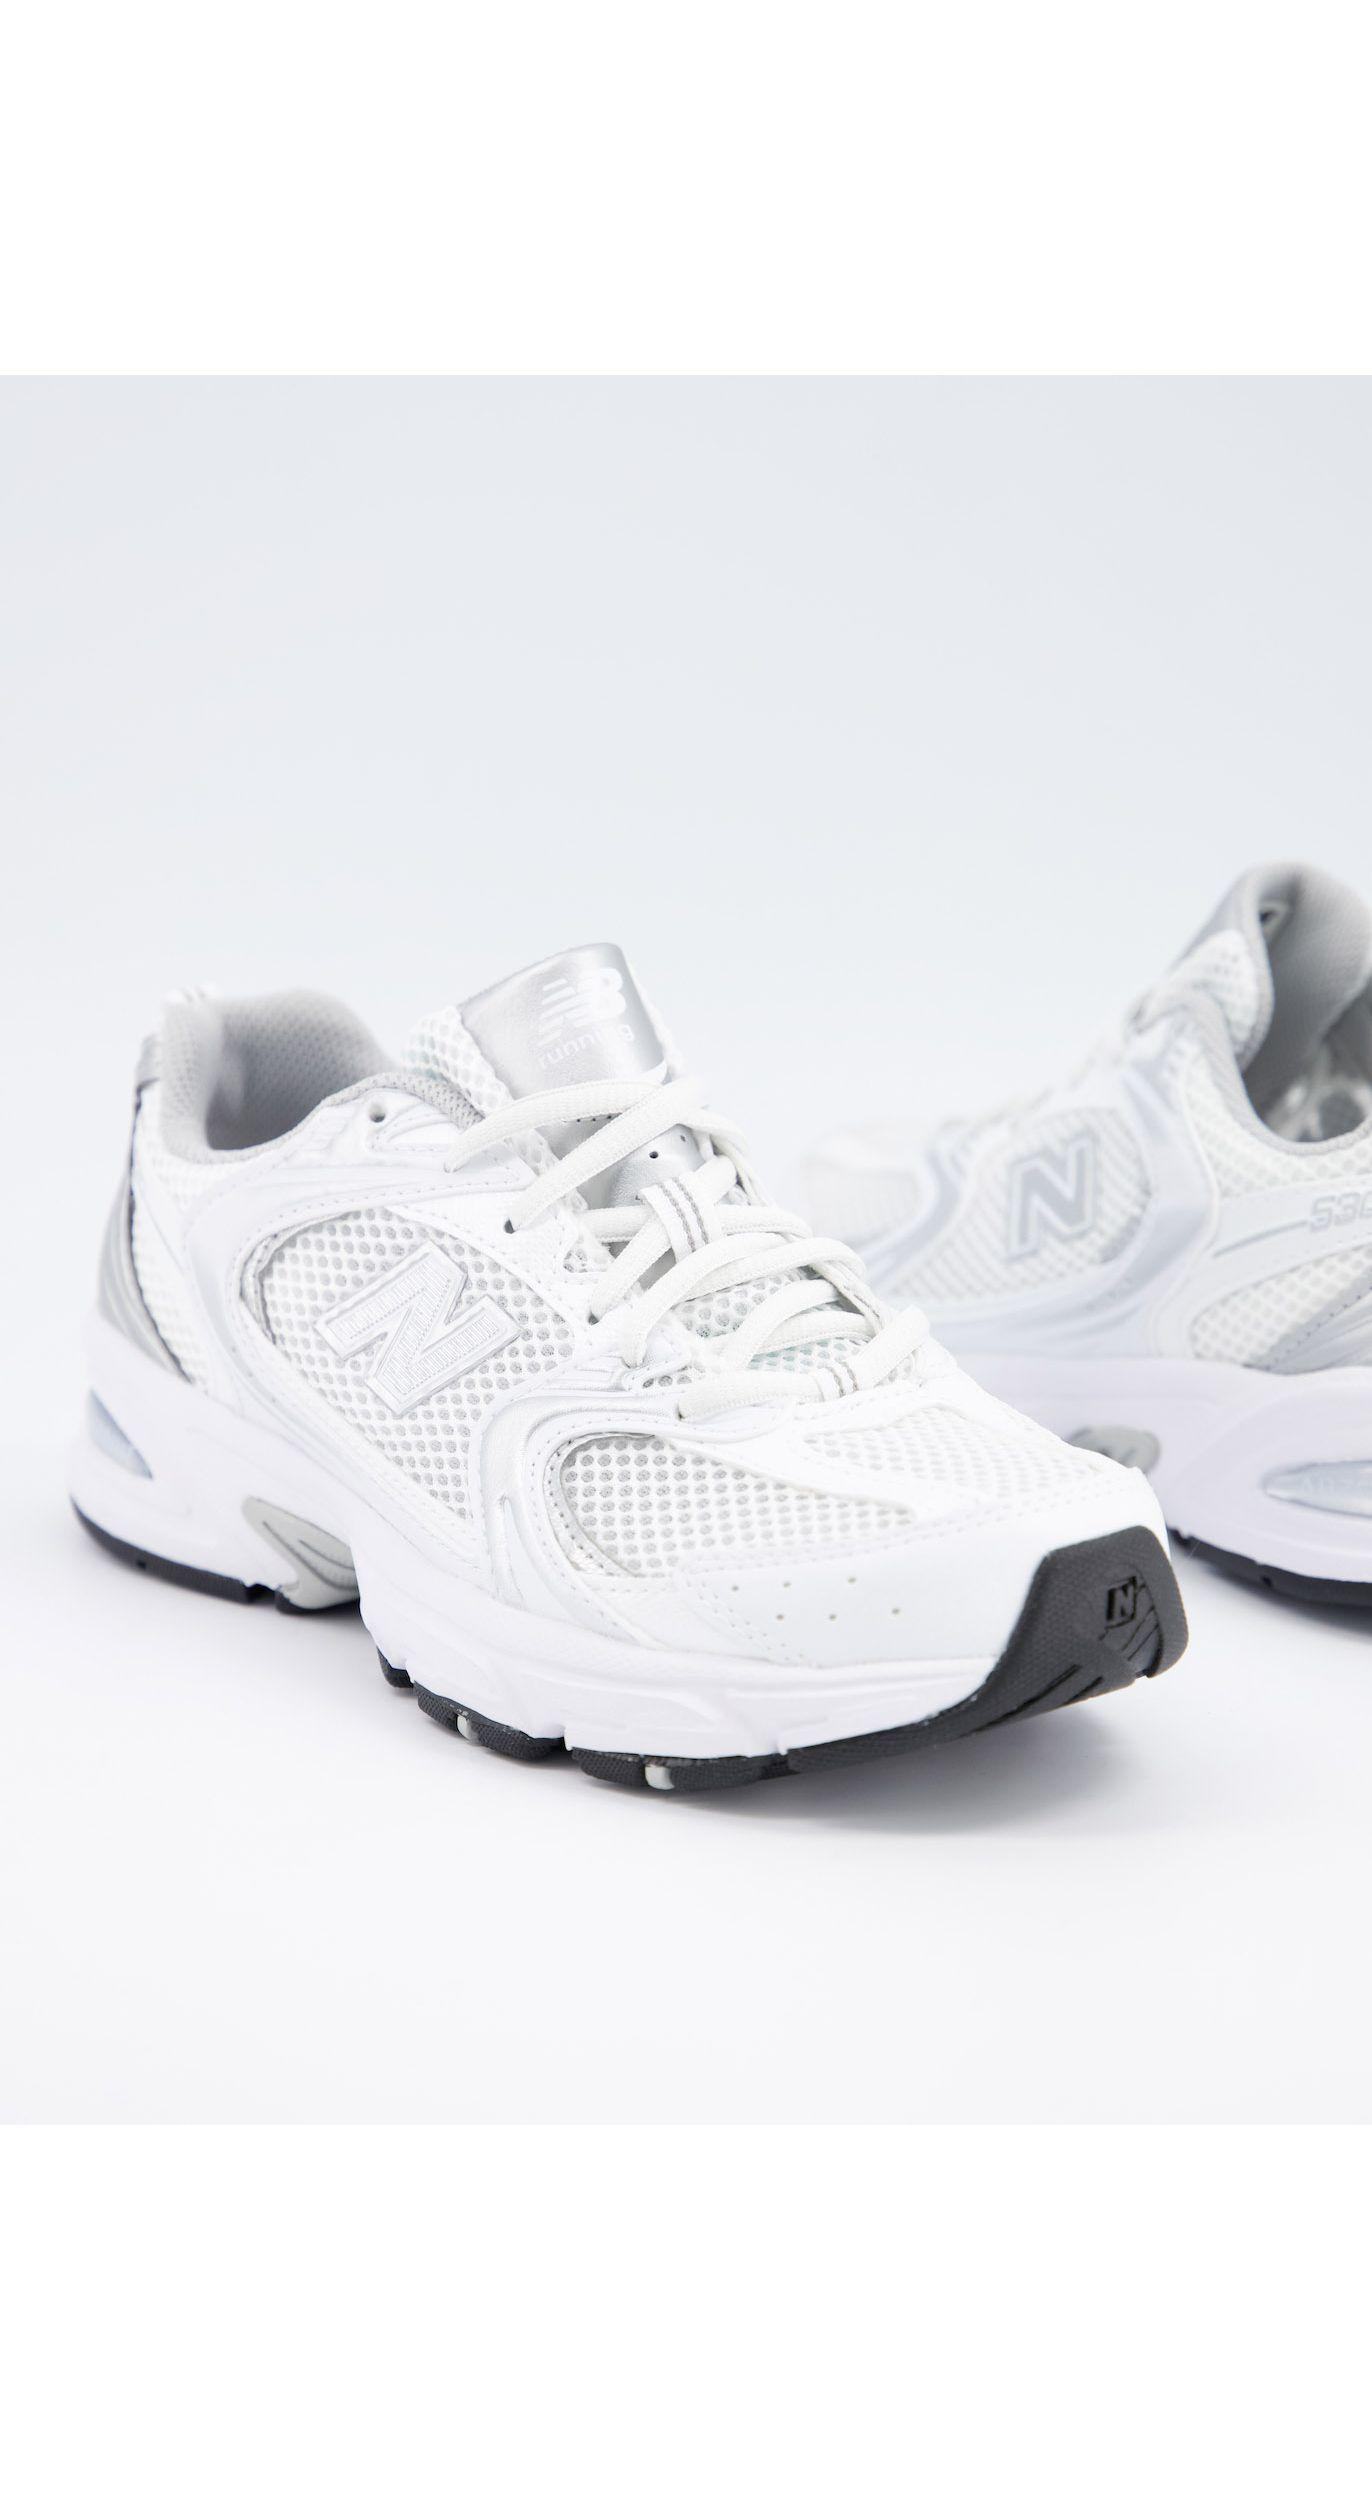 New Balance Rubber 530 Metallic Trainers in White - Lyst